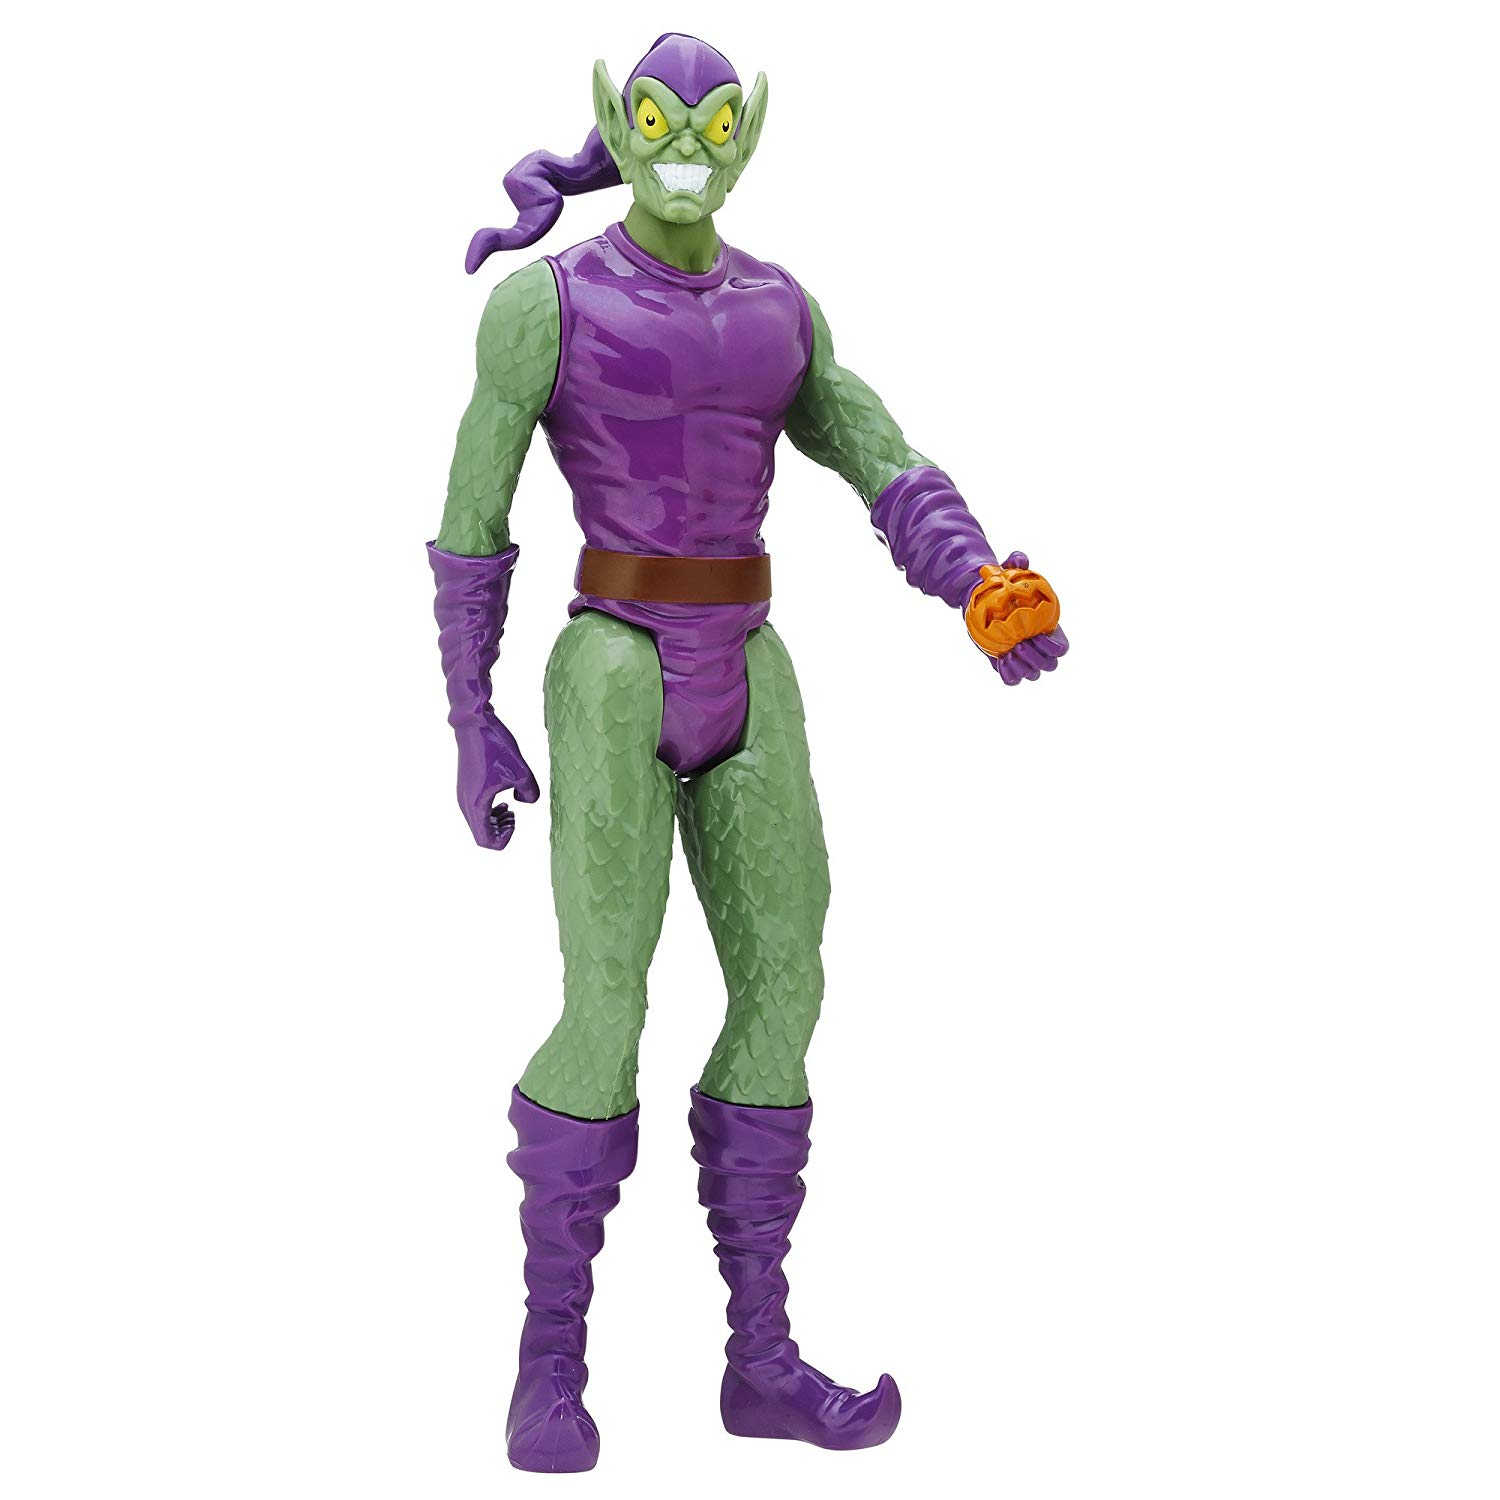 Steve Blum recommends Ultimate Spider-Man Green Goblin Figure